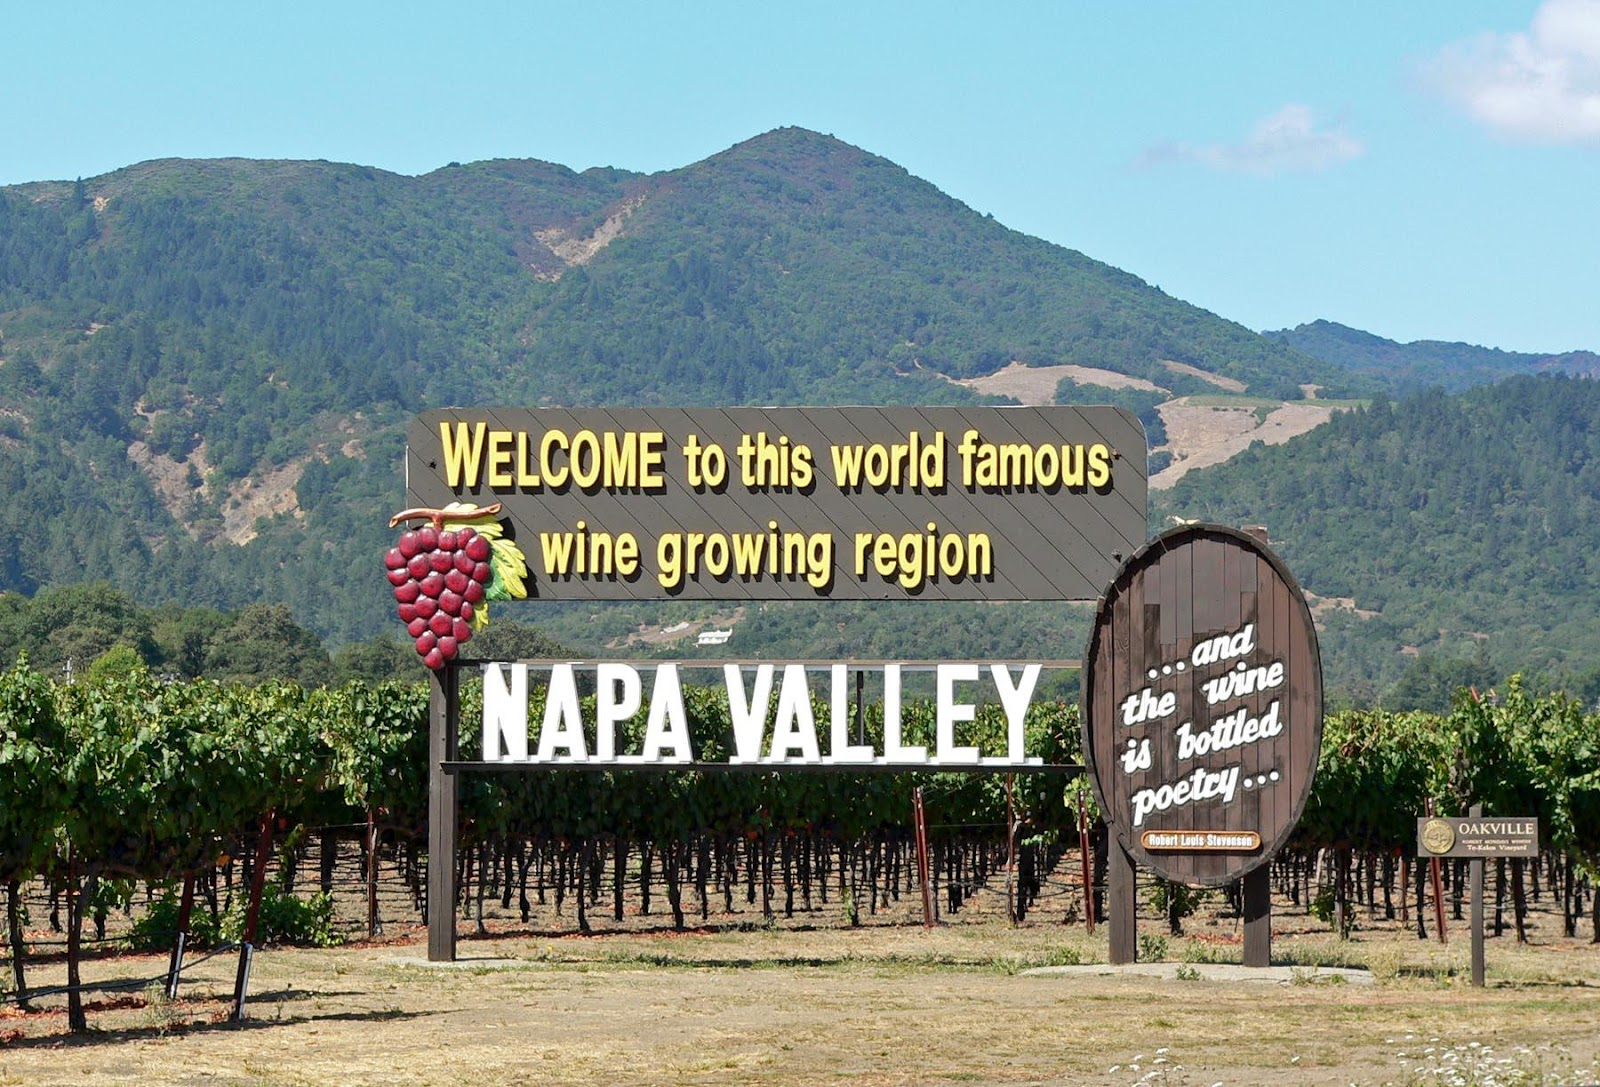 File:Napa Valley welcome sign.jpg - Wikimedia Commons